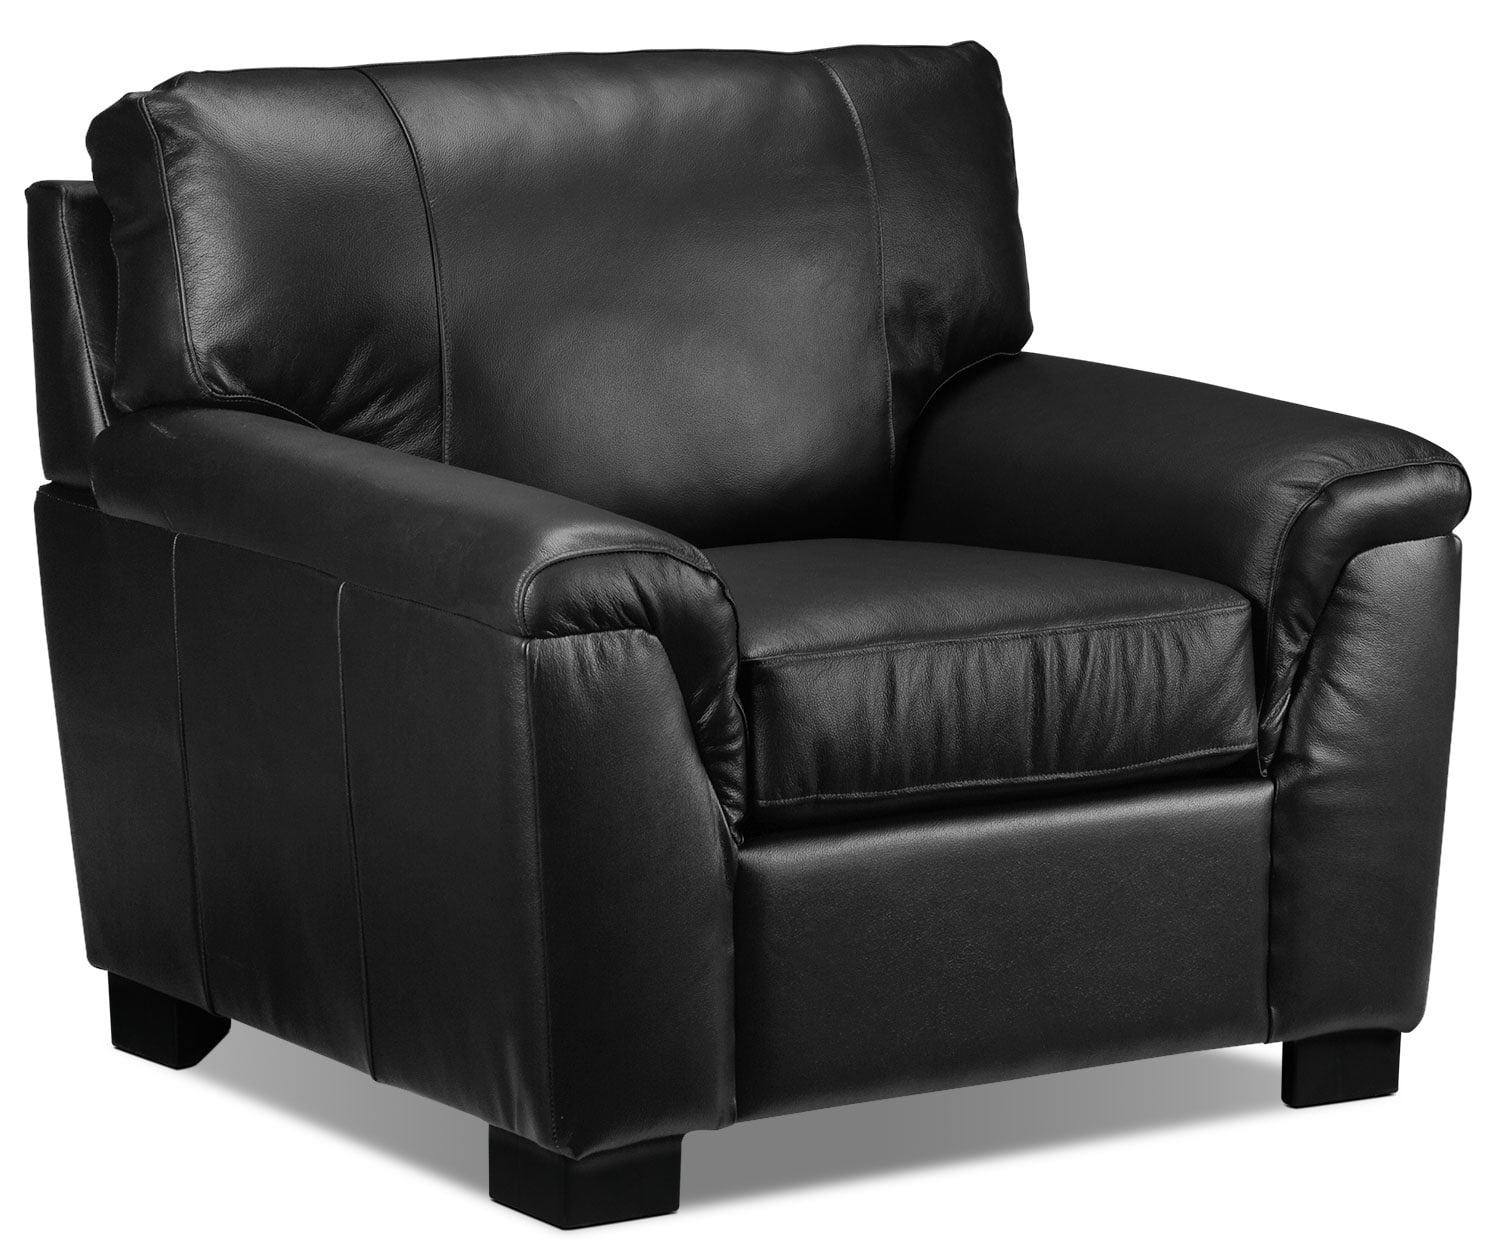 Reynolds Chair - Black